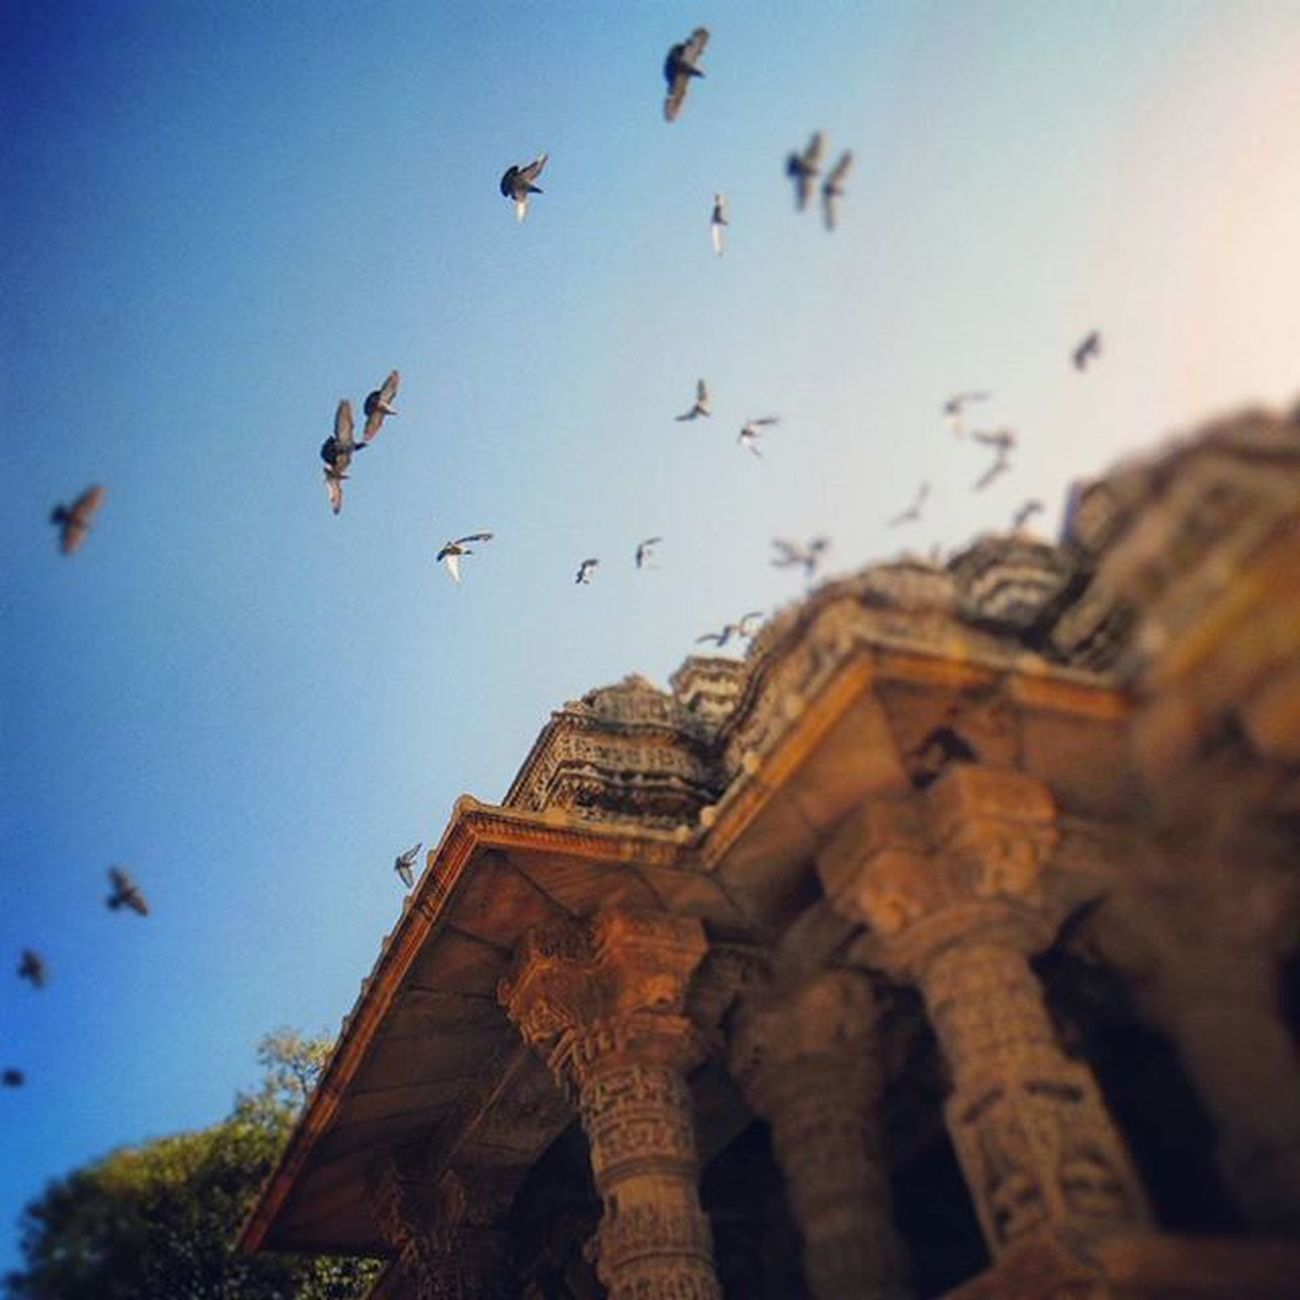 Don't be afraid to fly. Flying birds on the Modhera sun temple Bird Birds Flying Sunnyday Suntemple Sun Modherasuntemple Modhera Temple Gujarat Sunny Bluesky Sky Heritage Heritageplace Place Instalike Likes Love Instagood Instalove Iloveamdavad Beautiful